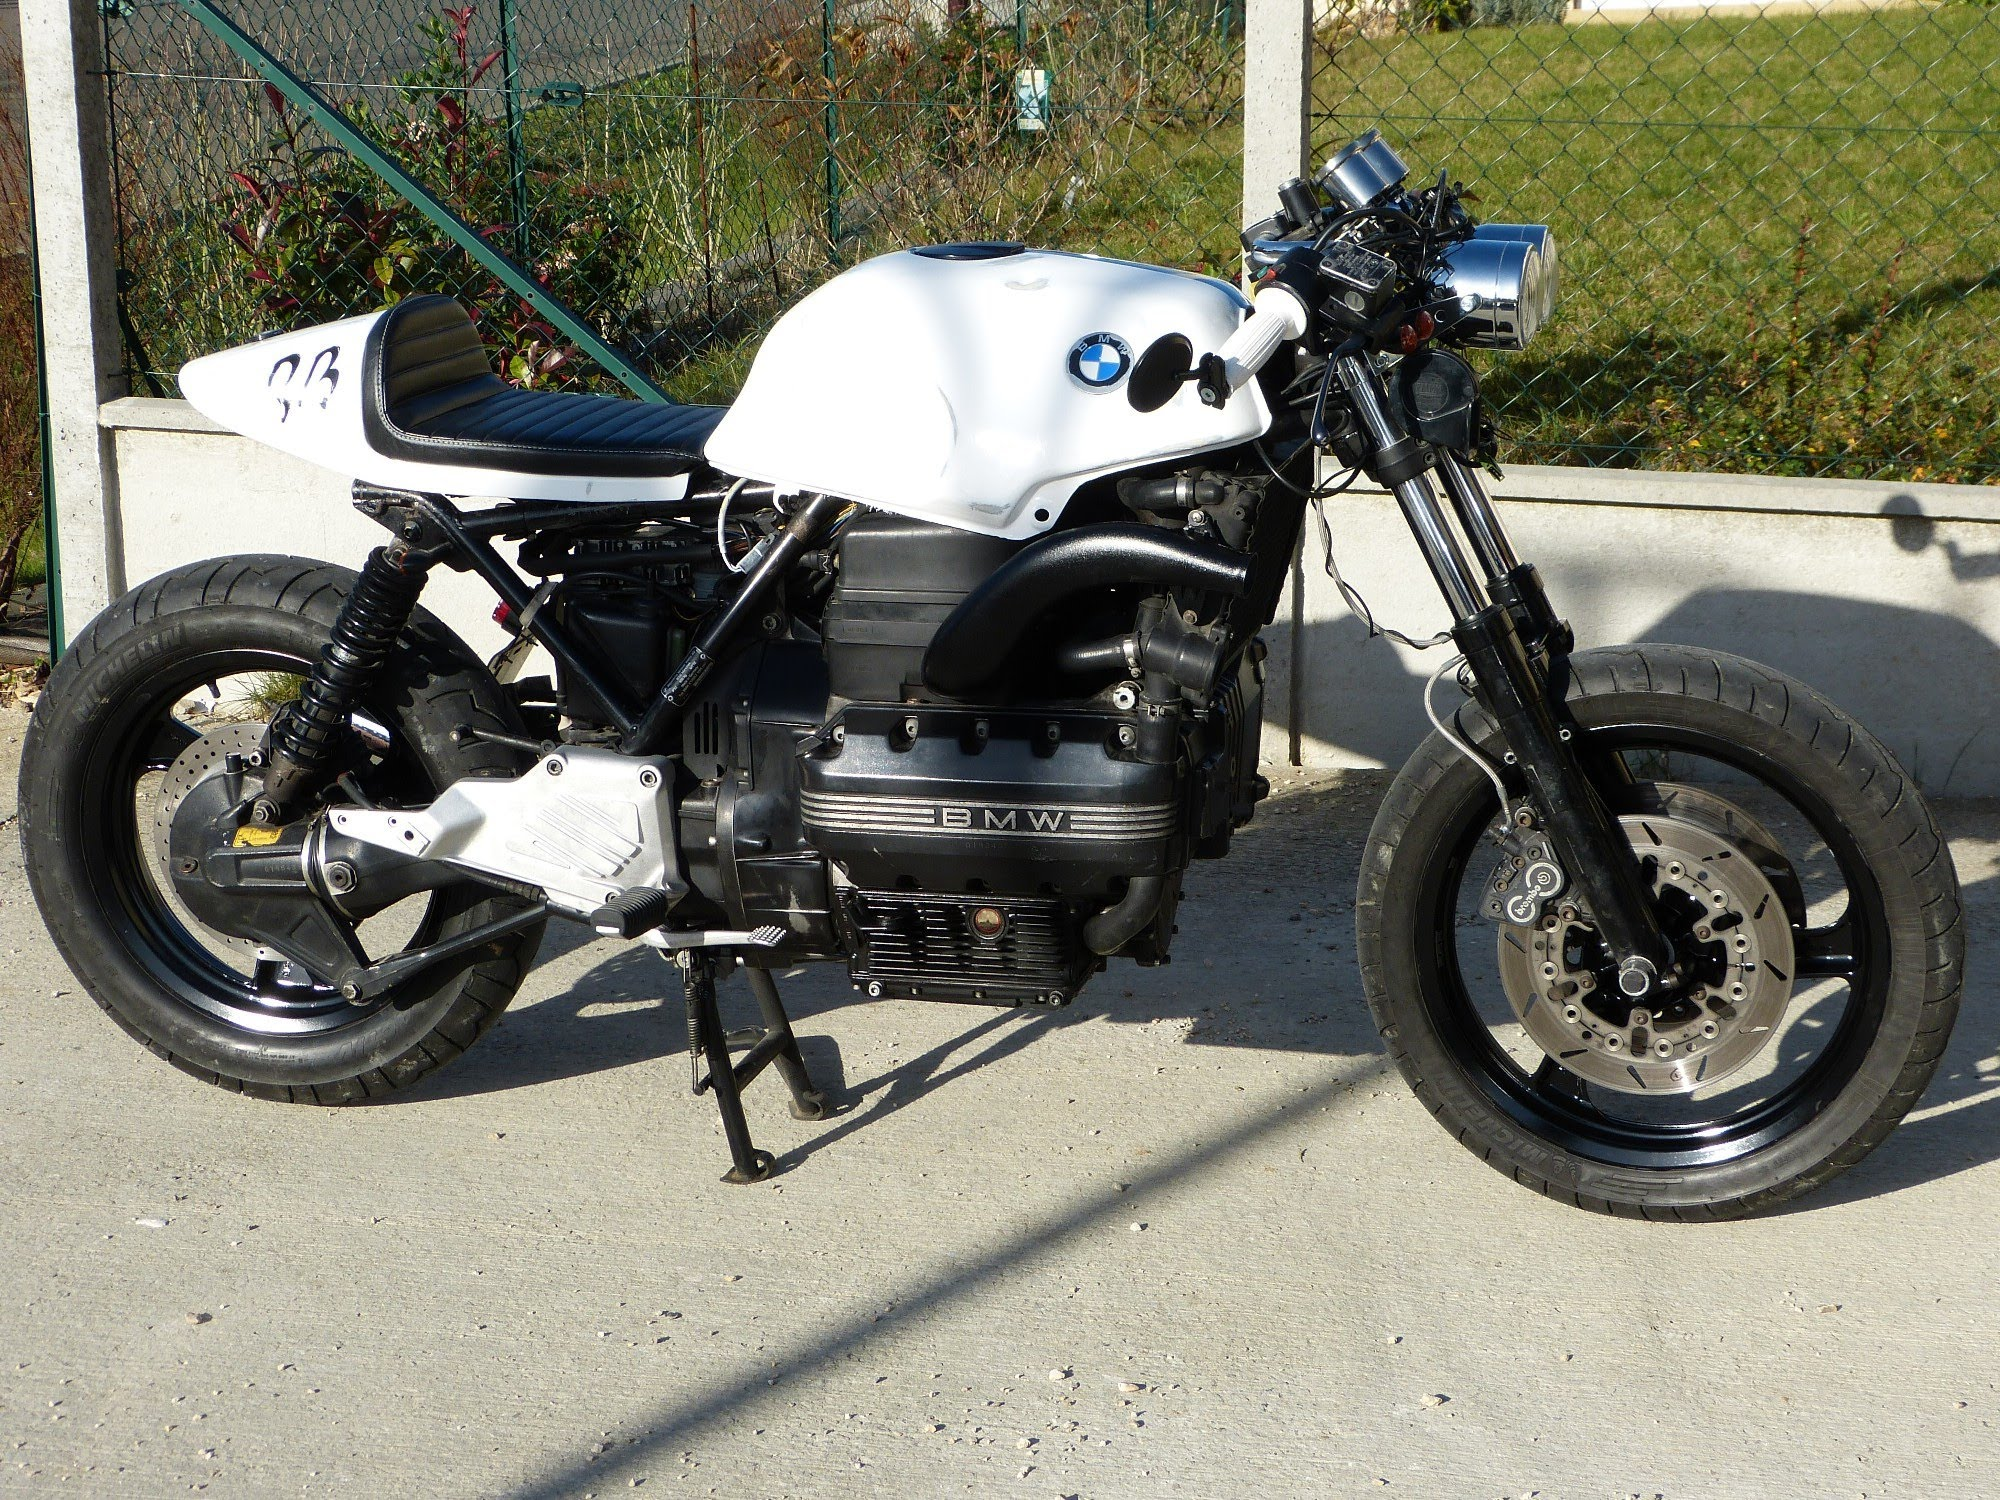 BMW R1100RS 1992 images #5282